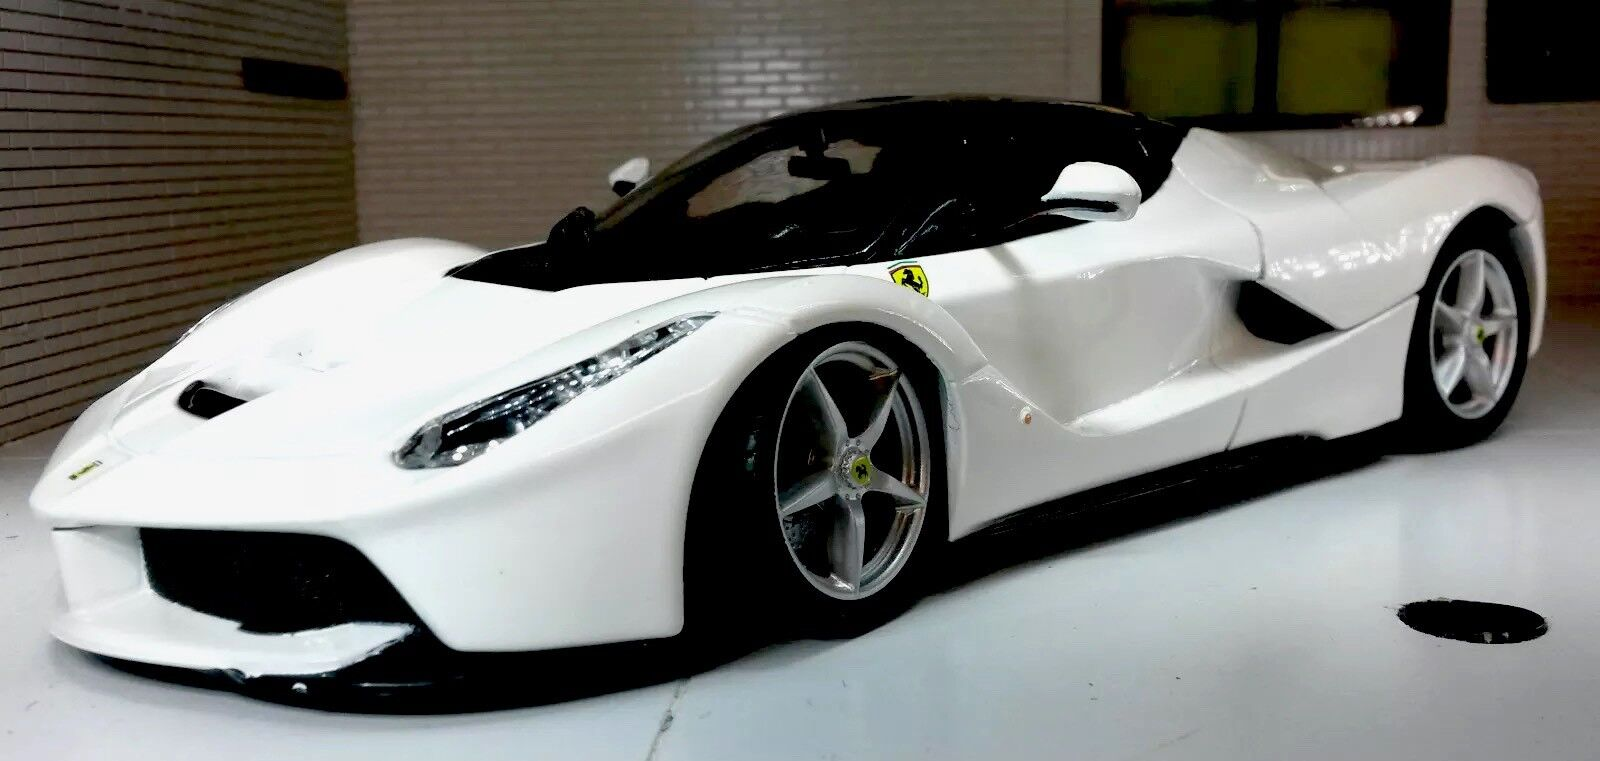 1 24 Scale White   La Ferrari Detailed Bburago Superb Diecast Model Car Burago